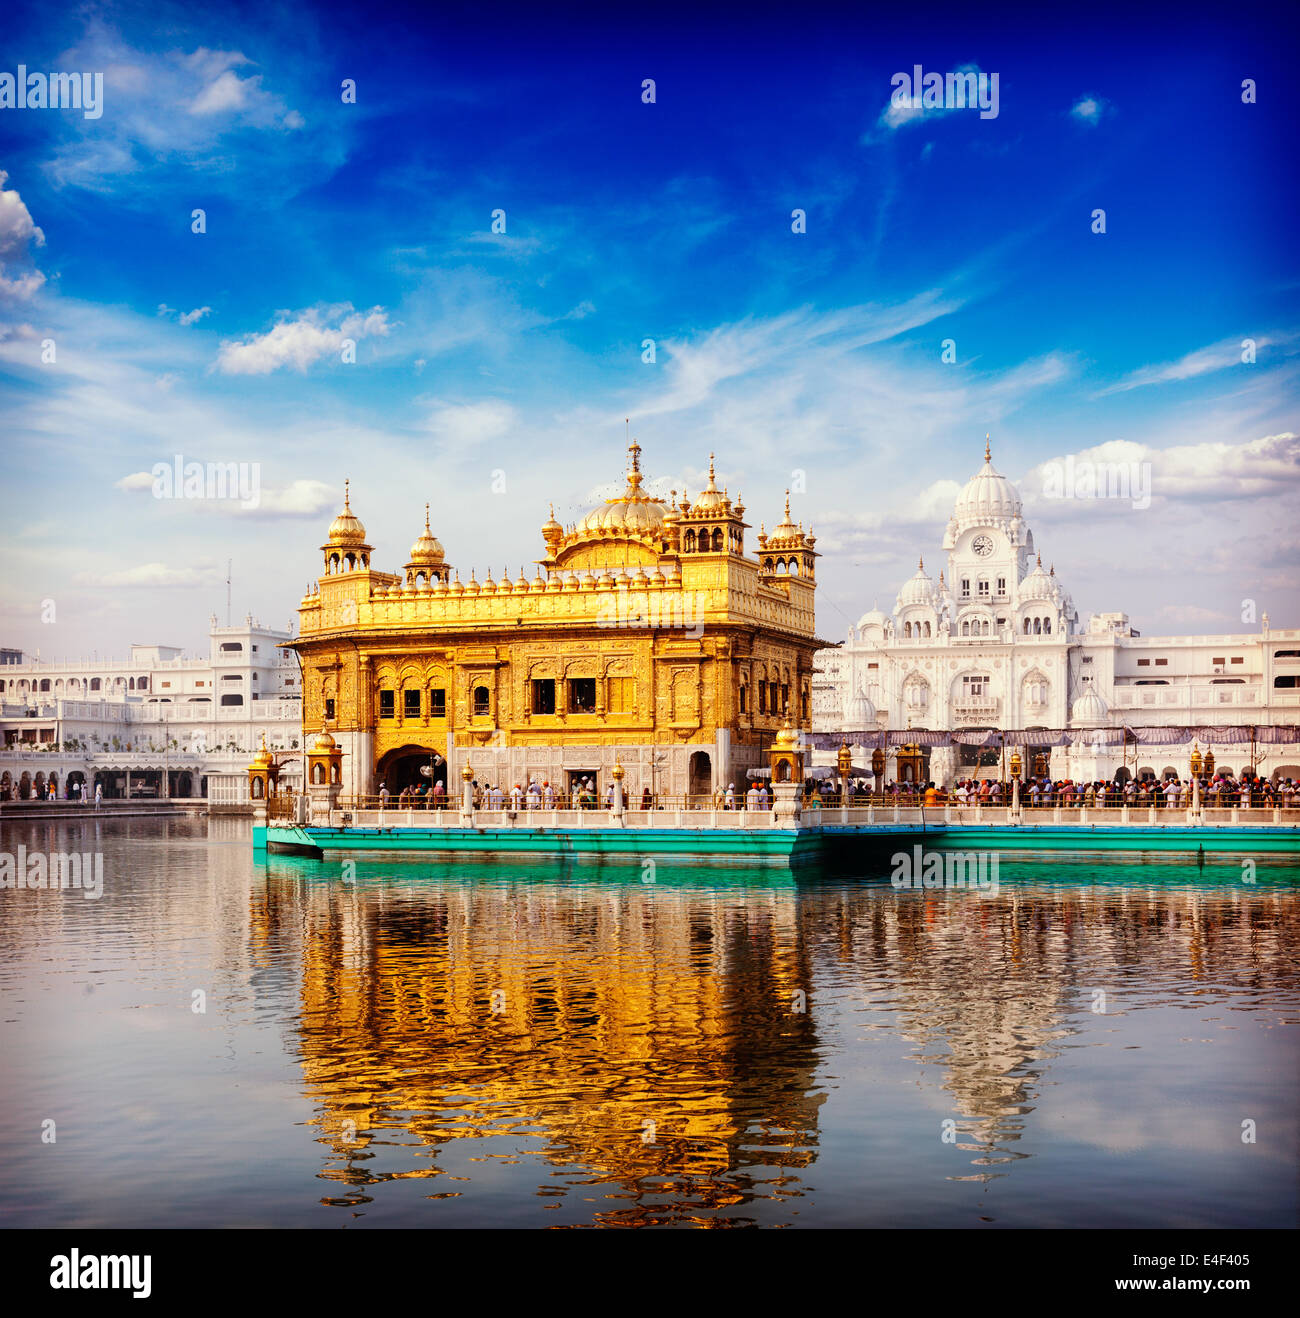 Vintage retro hipster style travel image of famous India attraction Sikh gurdwara Golden Temple (Harmandir Sahib). - Stock Image